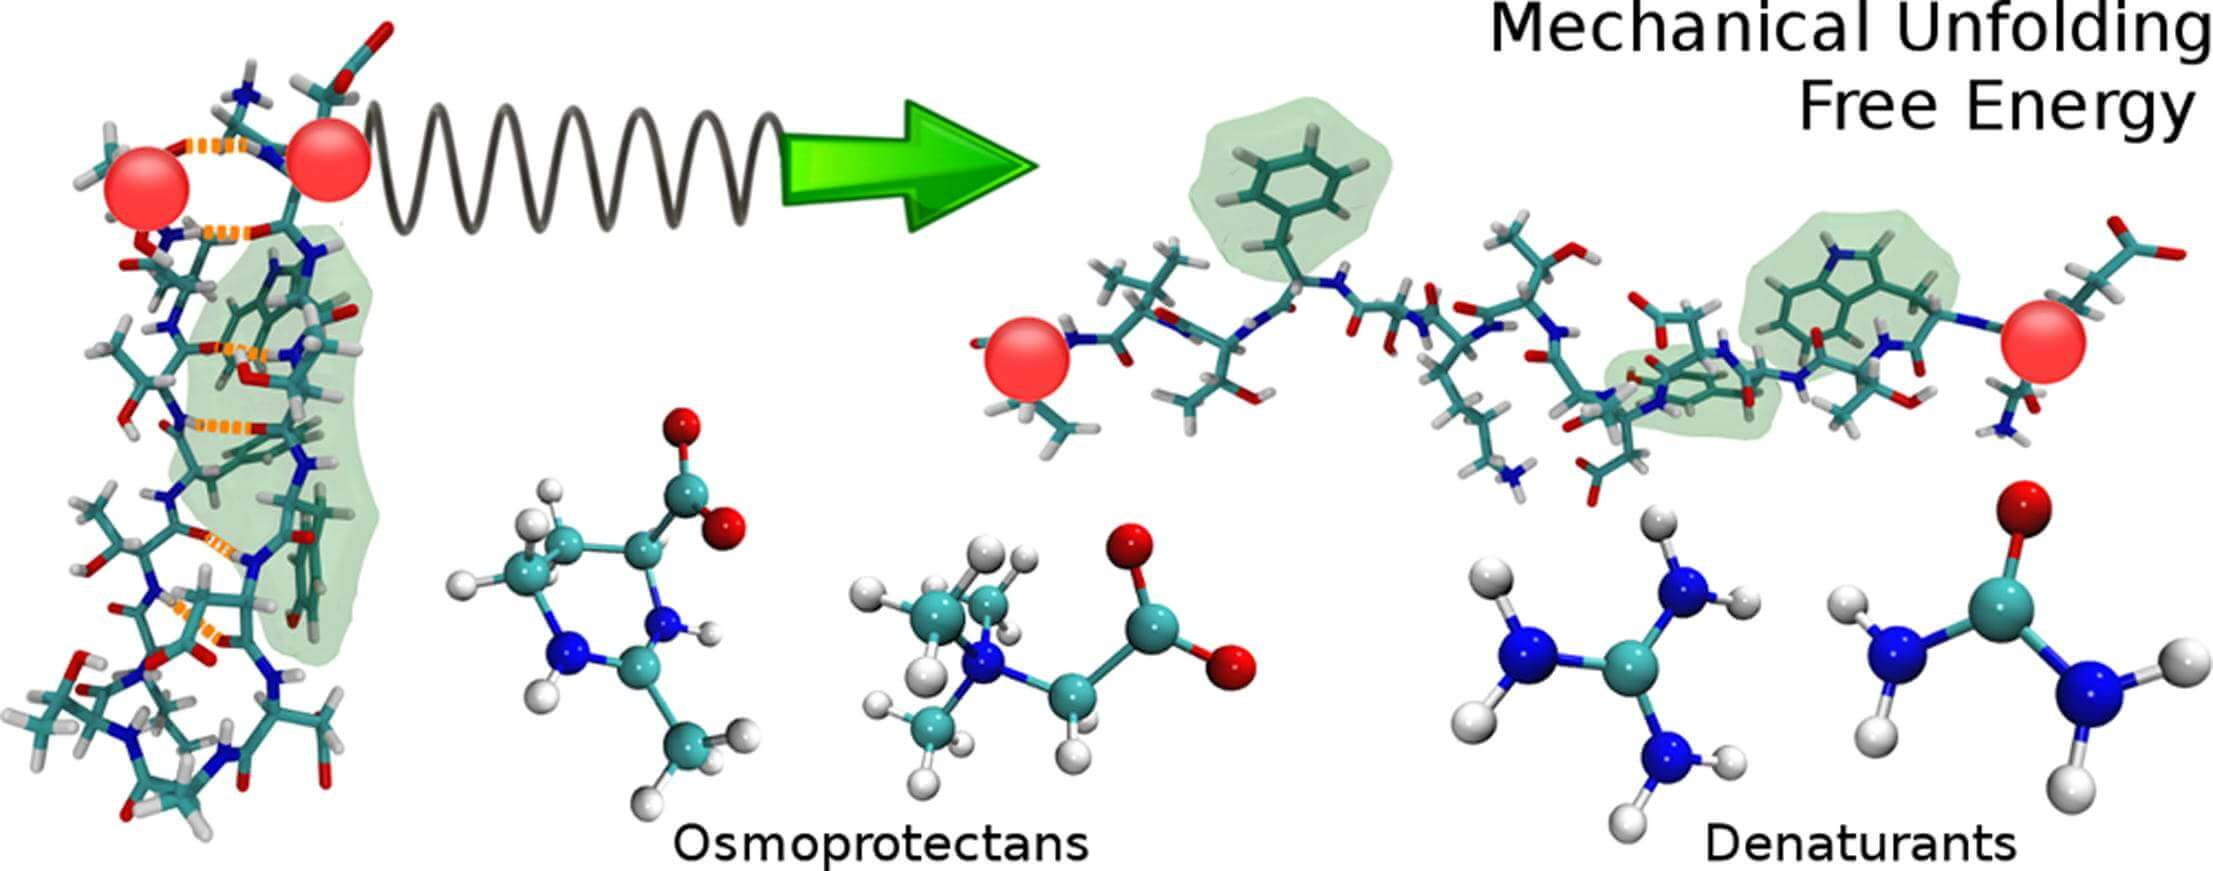 Modelling the effect of osmolytes on peptide mechanical unfolding